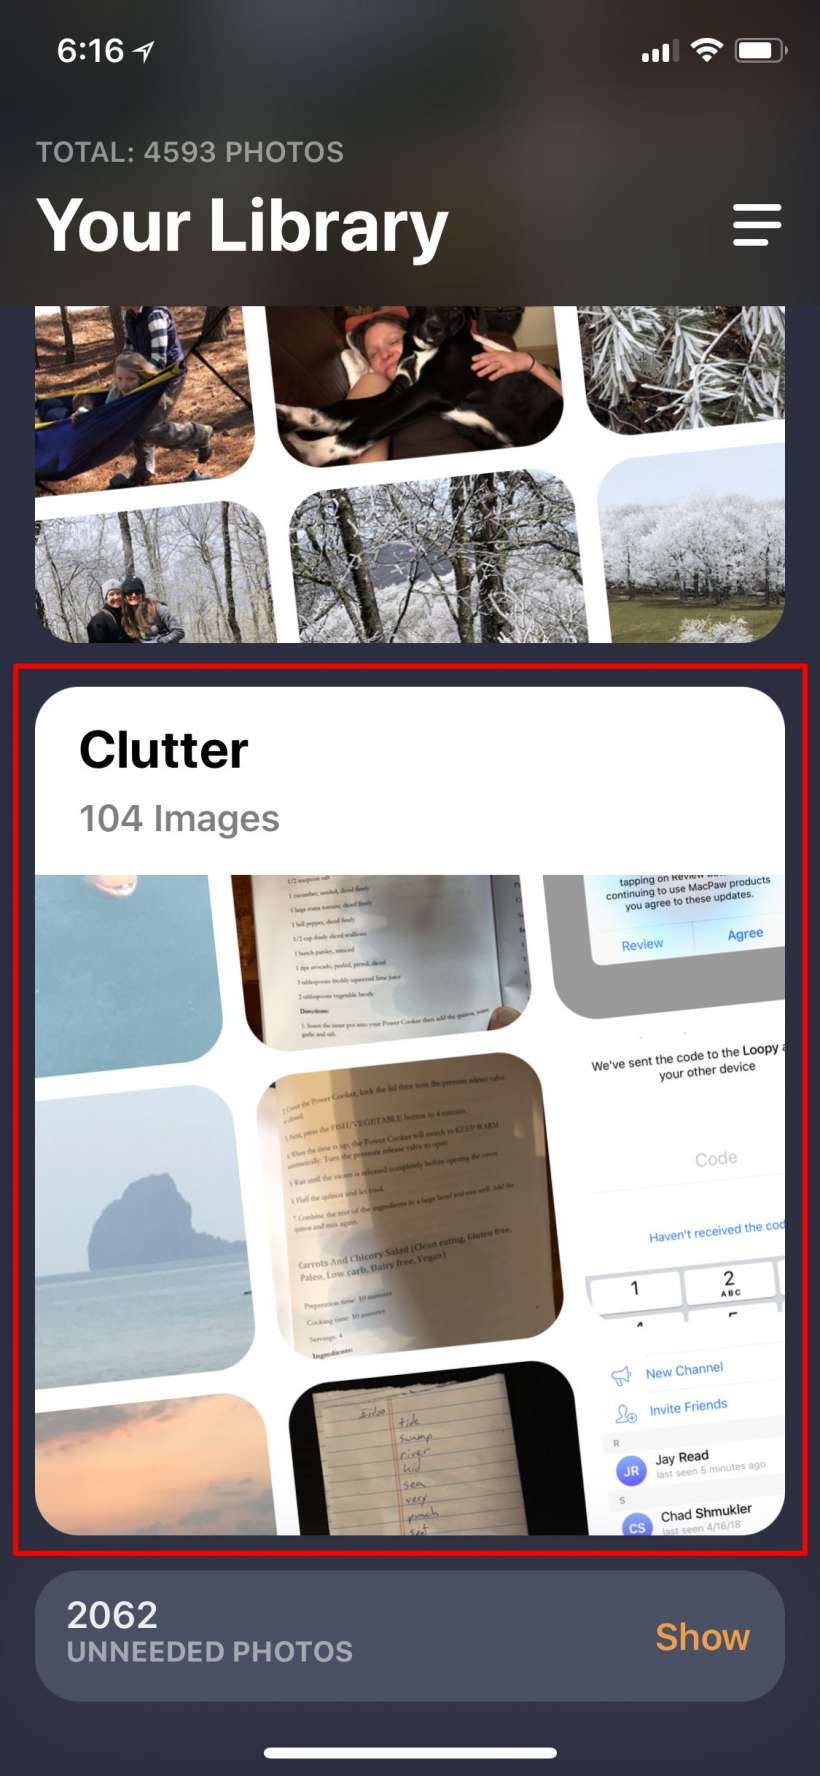 How to easily clean up duplicate, blurry and other clutter photos from iPhone camera roll with Gemini.